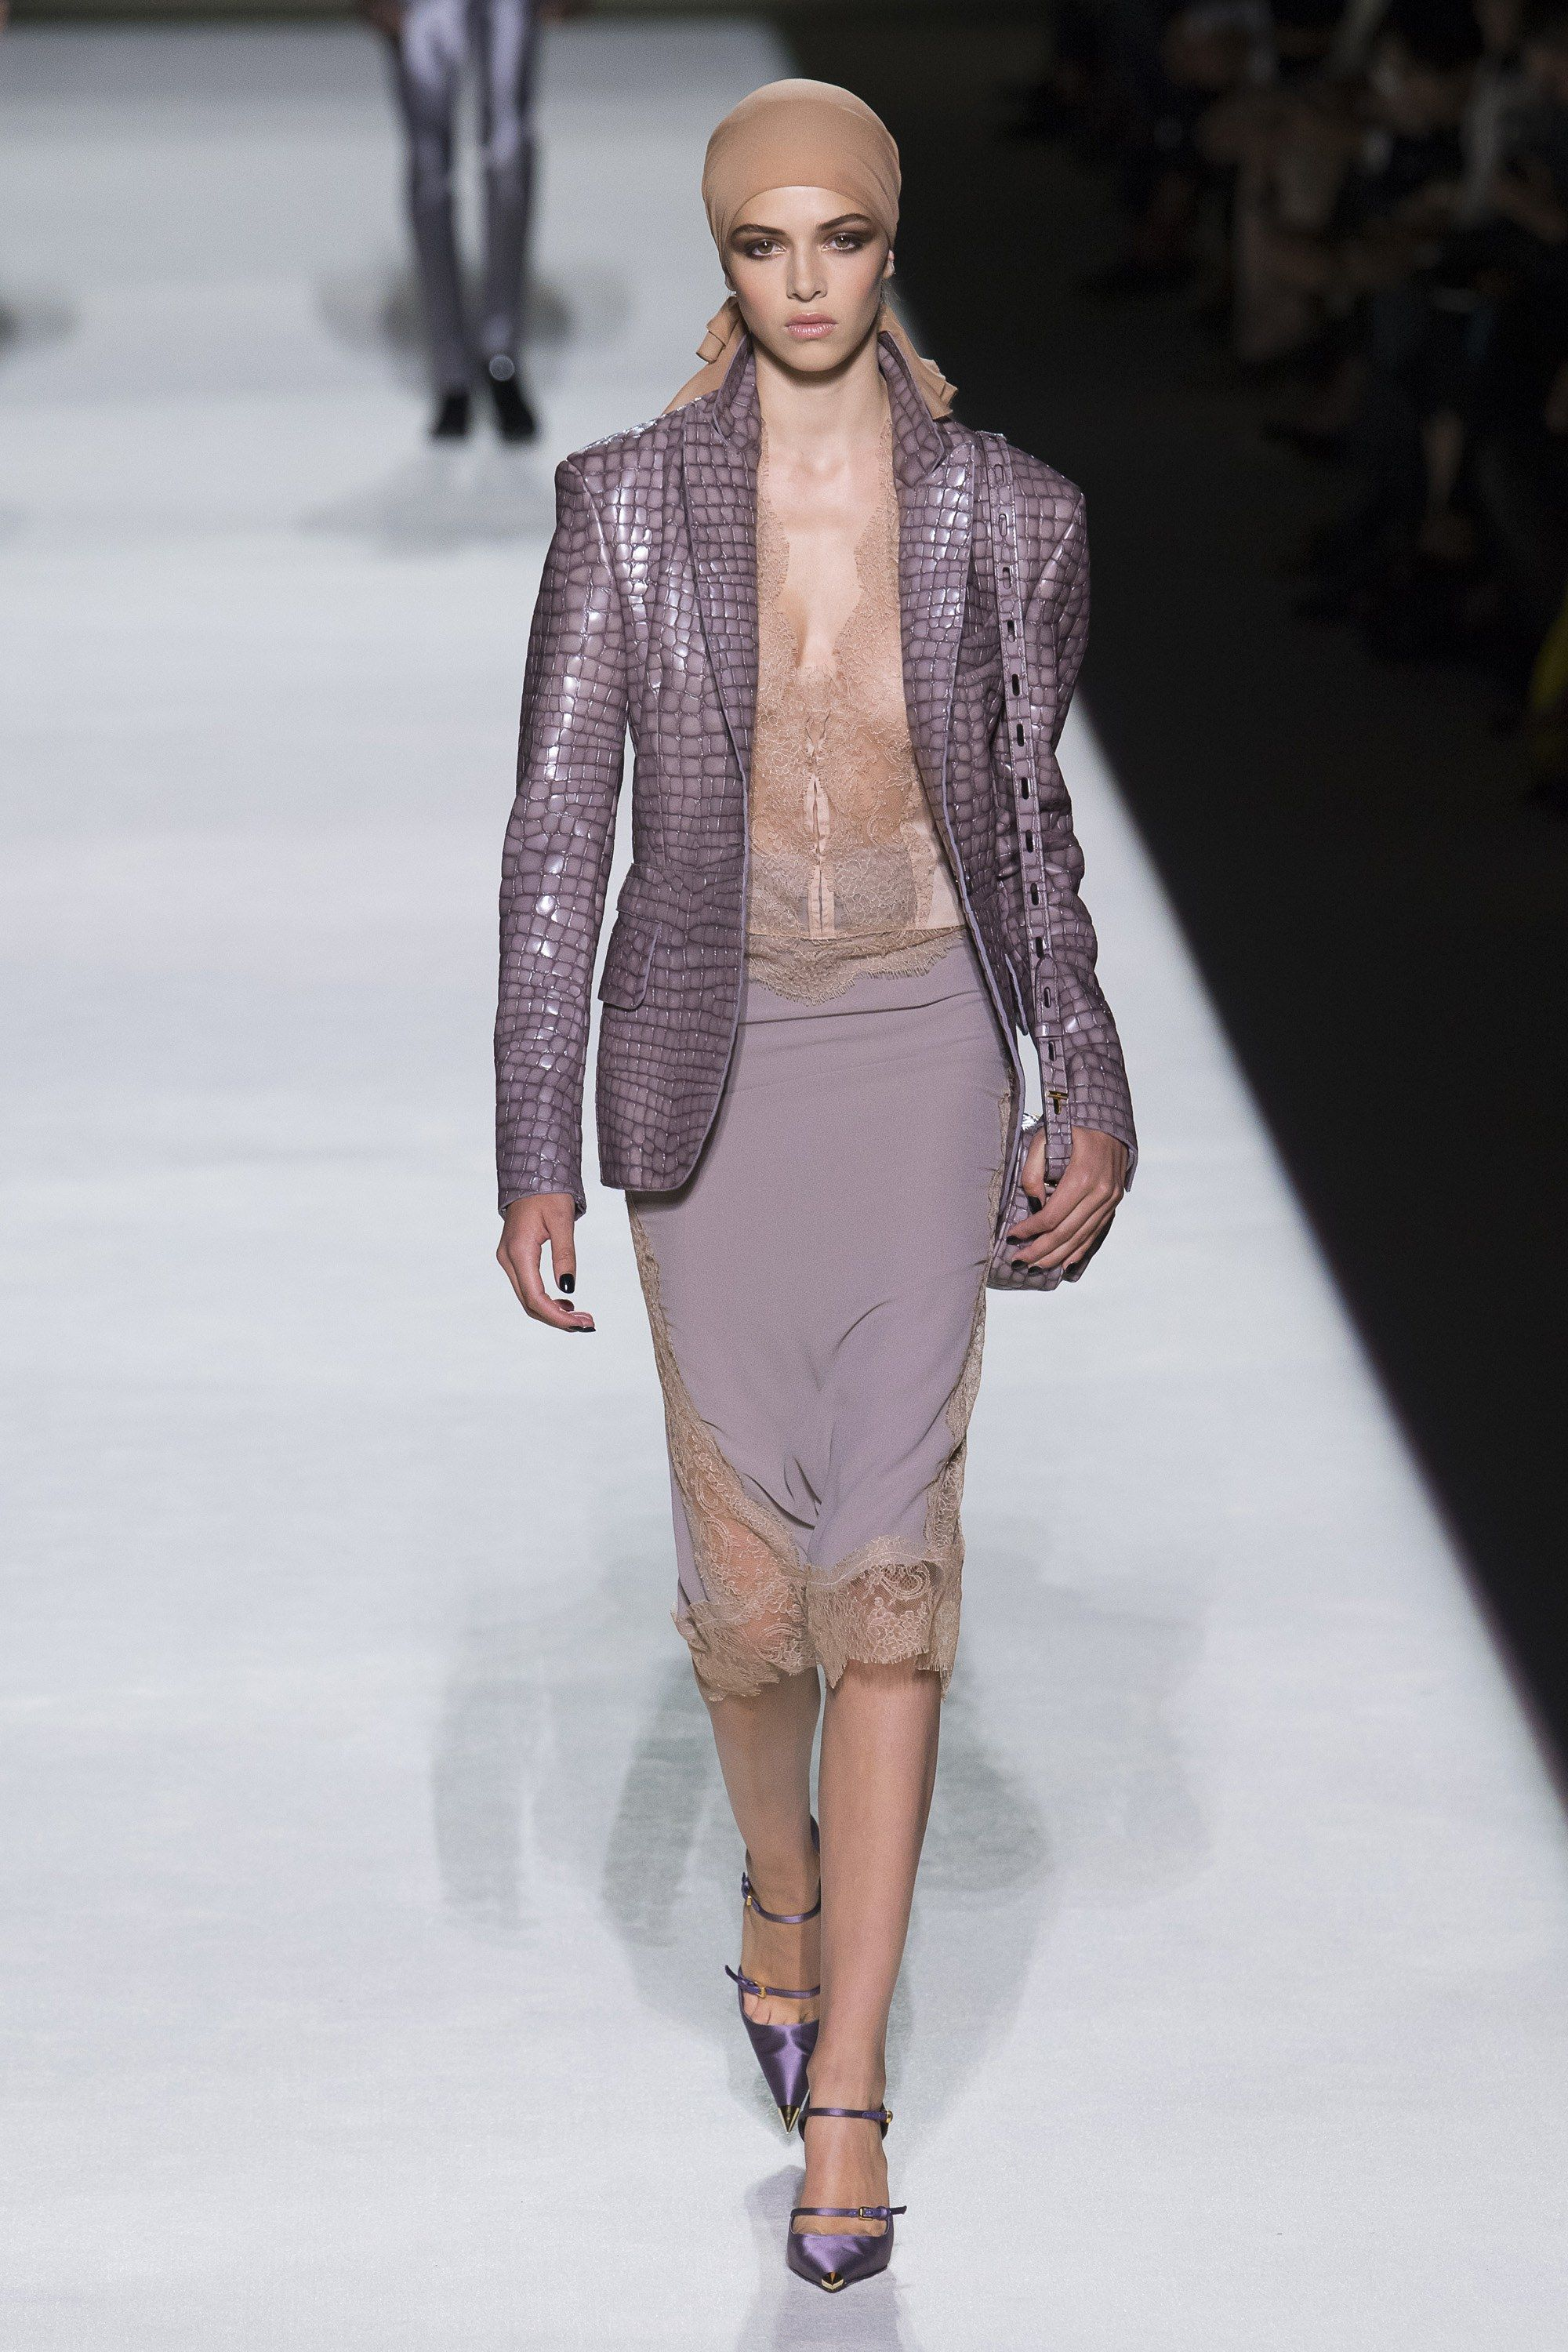 Tom Ford Spring 2019 Ready-to-Wear Fashion Show in 2019 ...